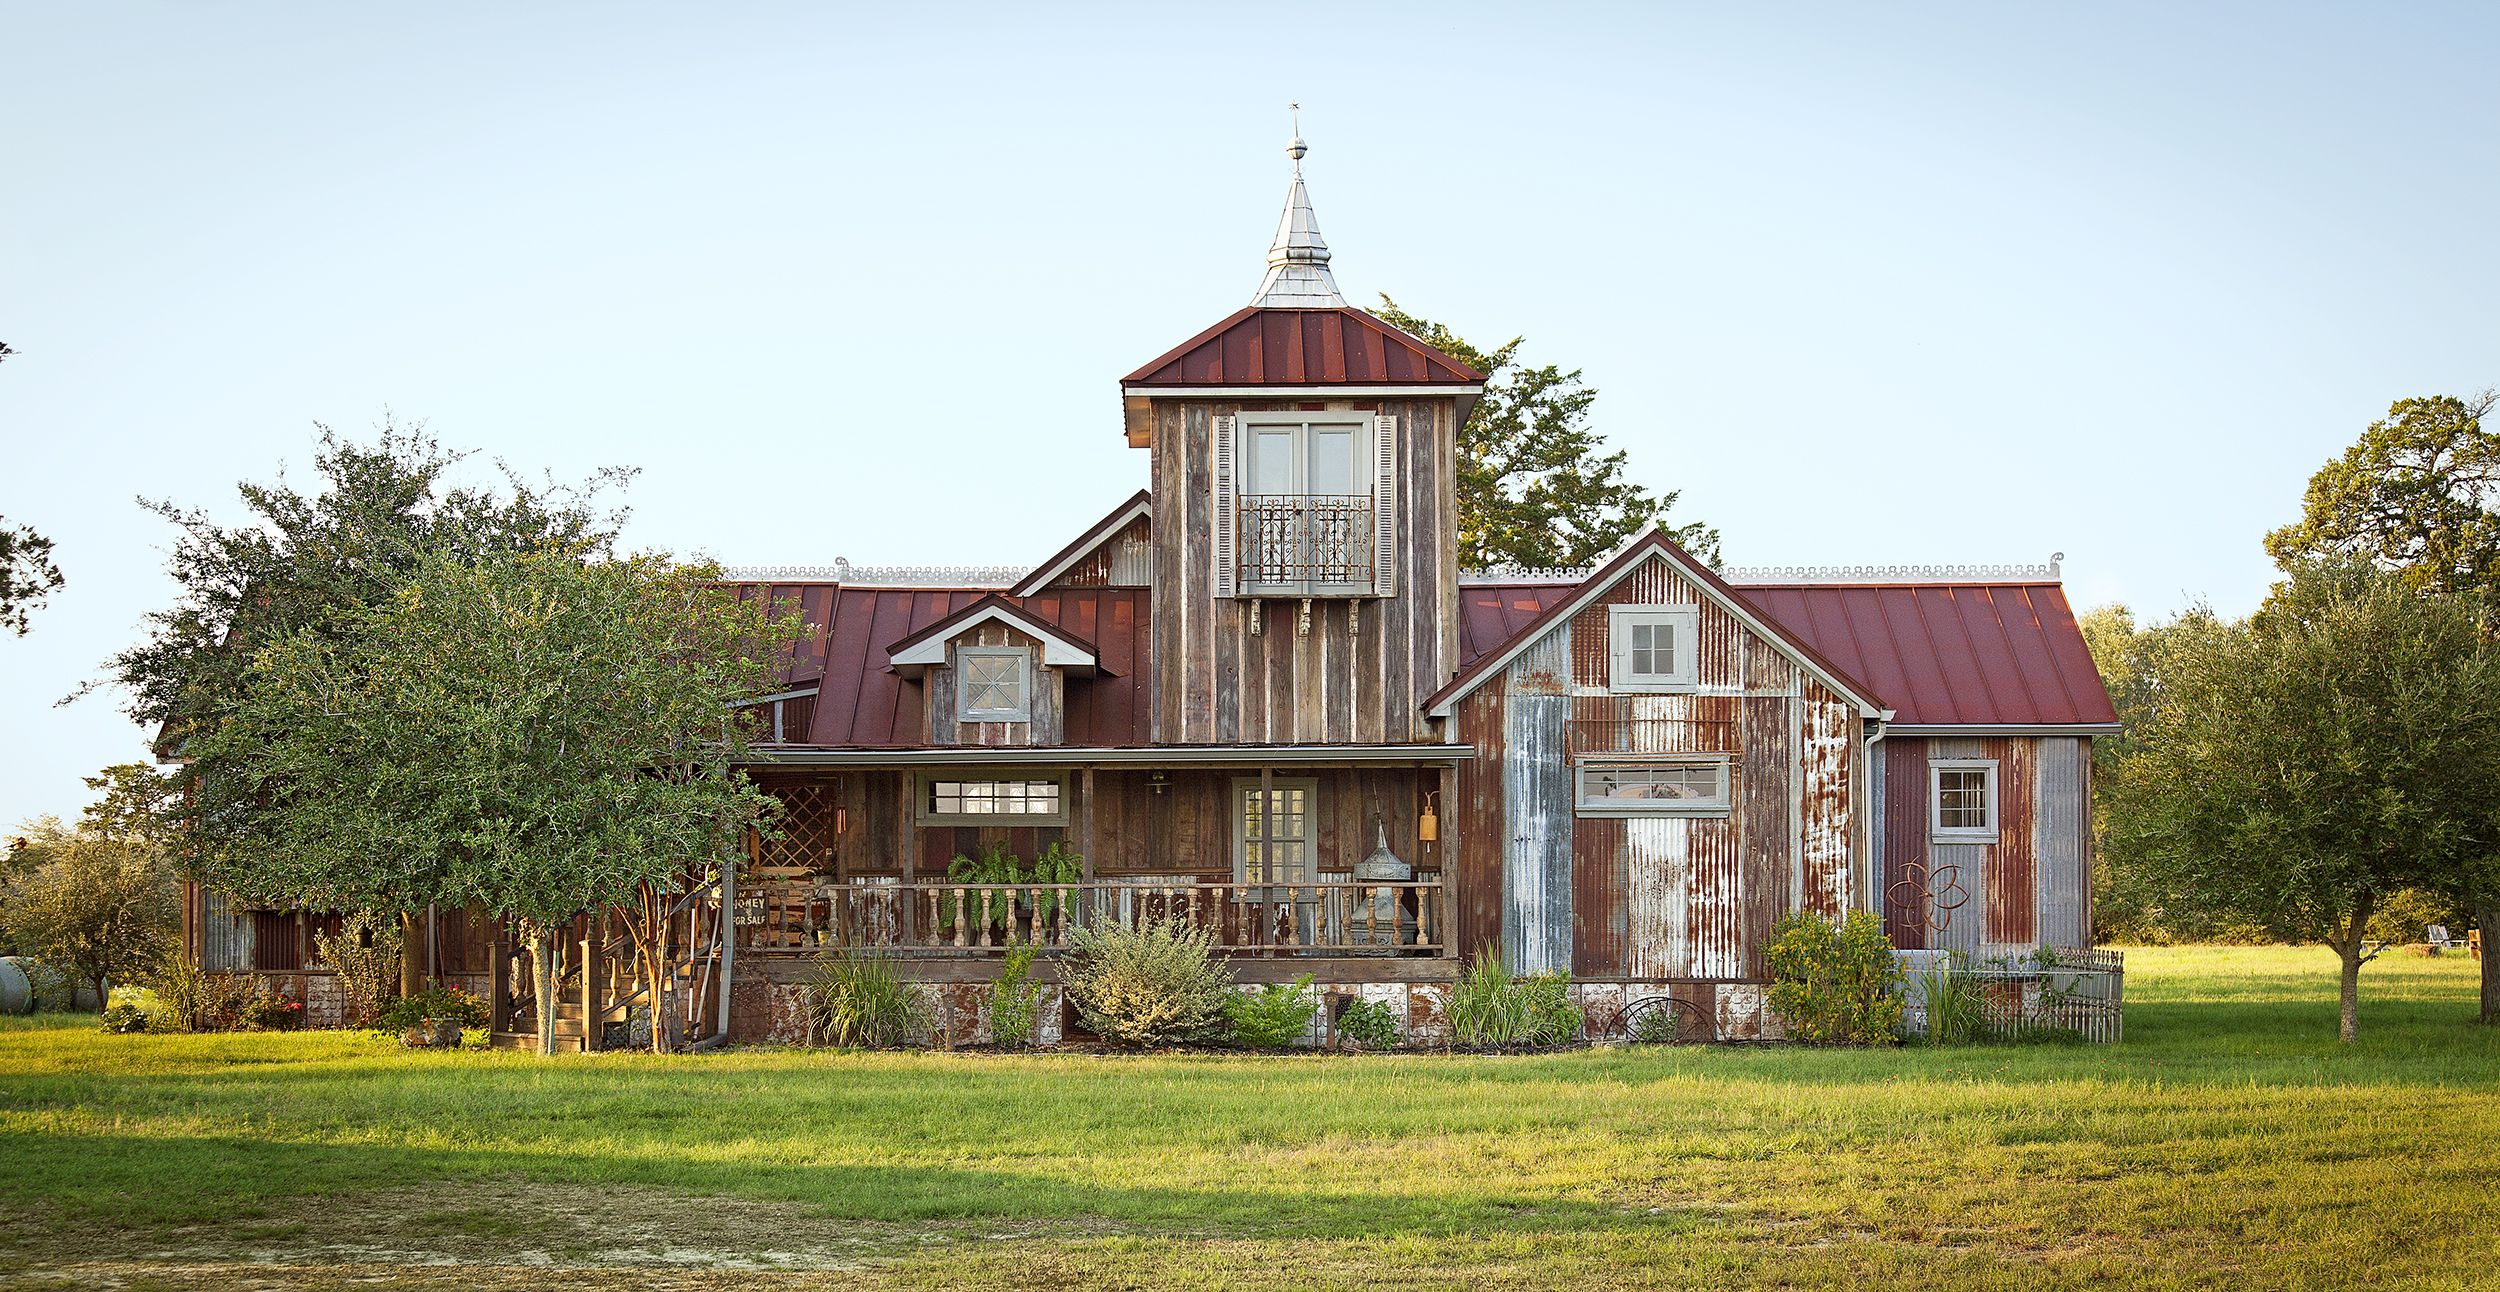 This Rustic Farmhouse Was Built And Decorated Using Almost Entirely Reclaimed Pieces